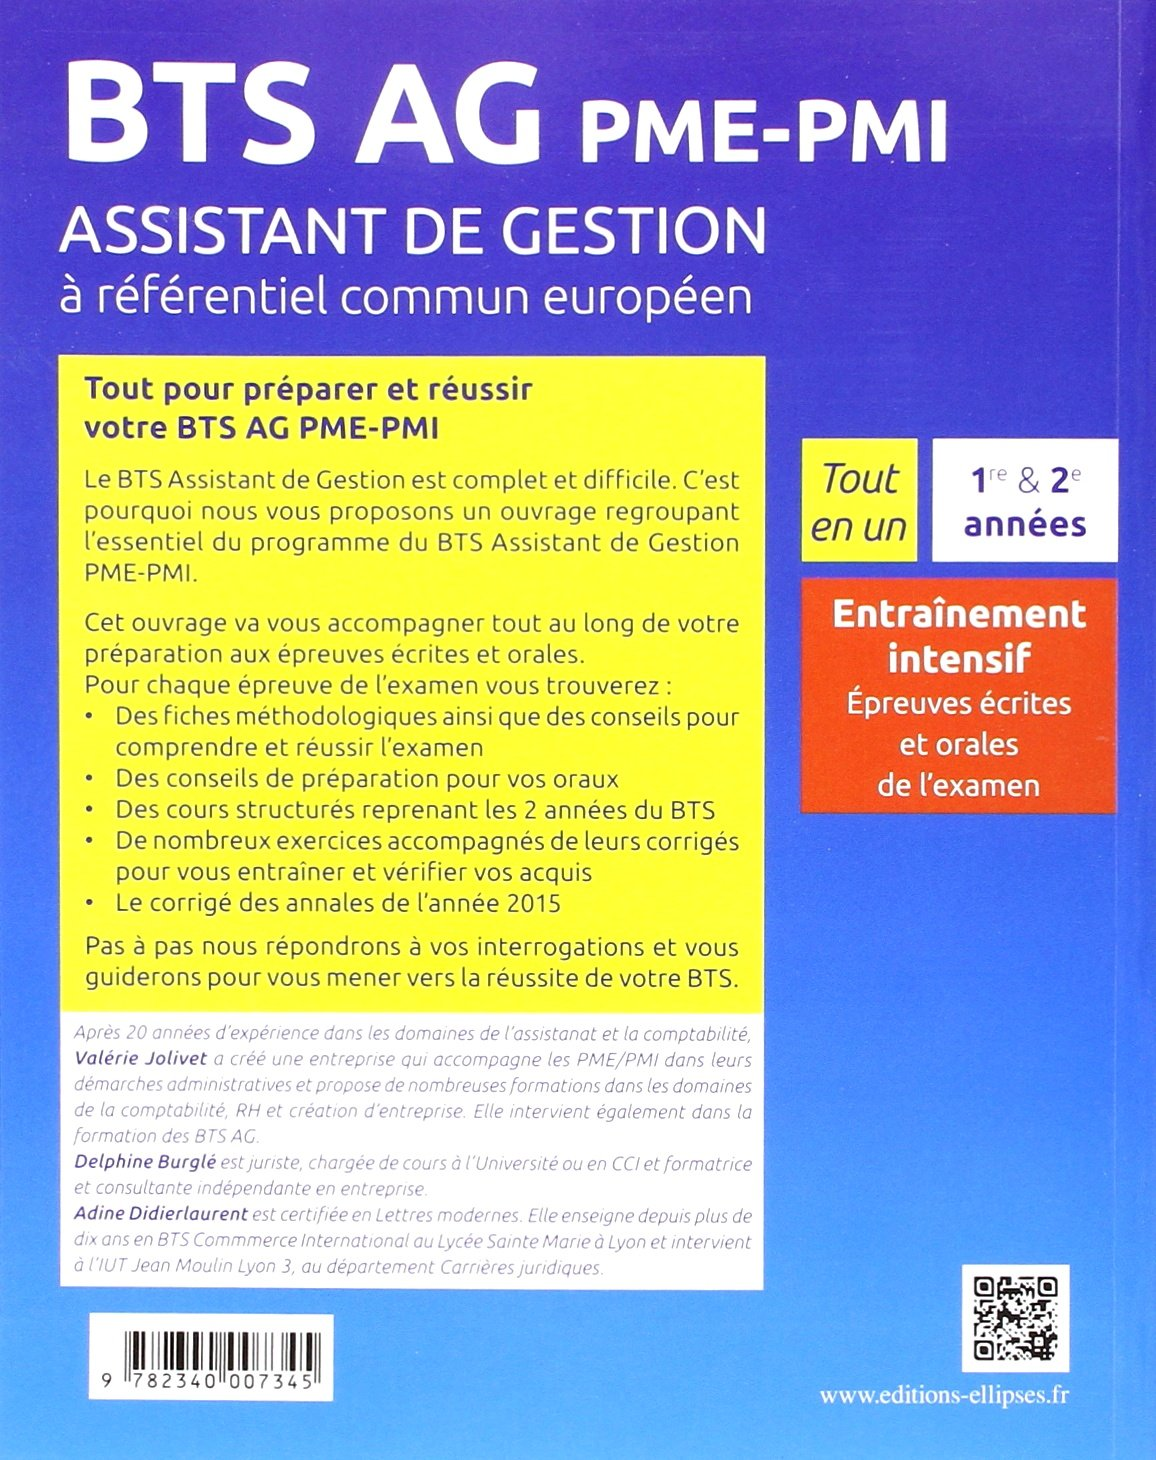 Tout en un Bts Ag Pme-Pmi Assistant de Gestion a Referentiel Commun Europeen: 9782340007345: Amazon.com: Books